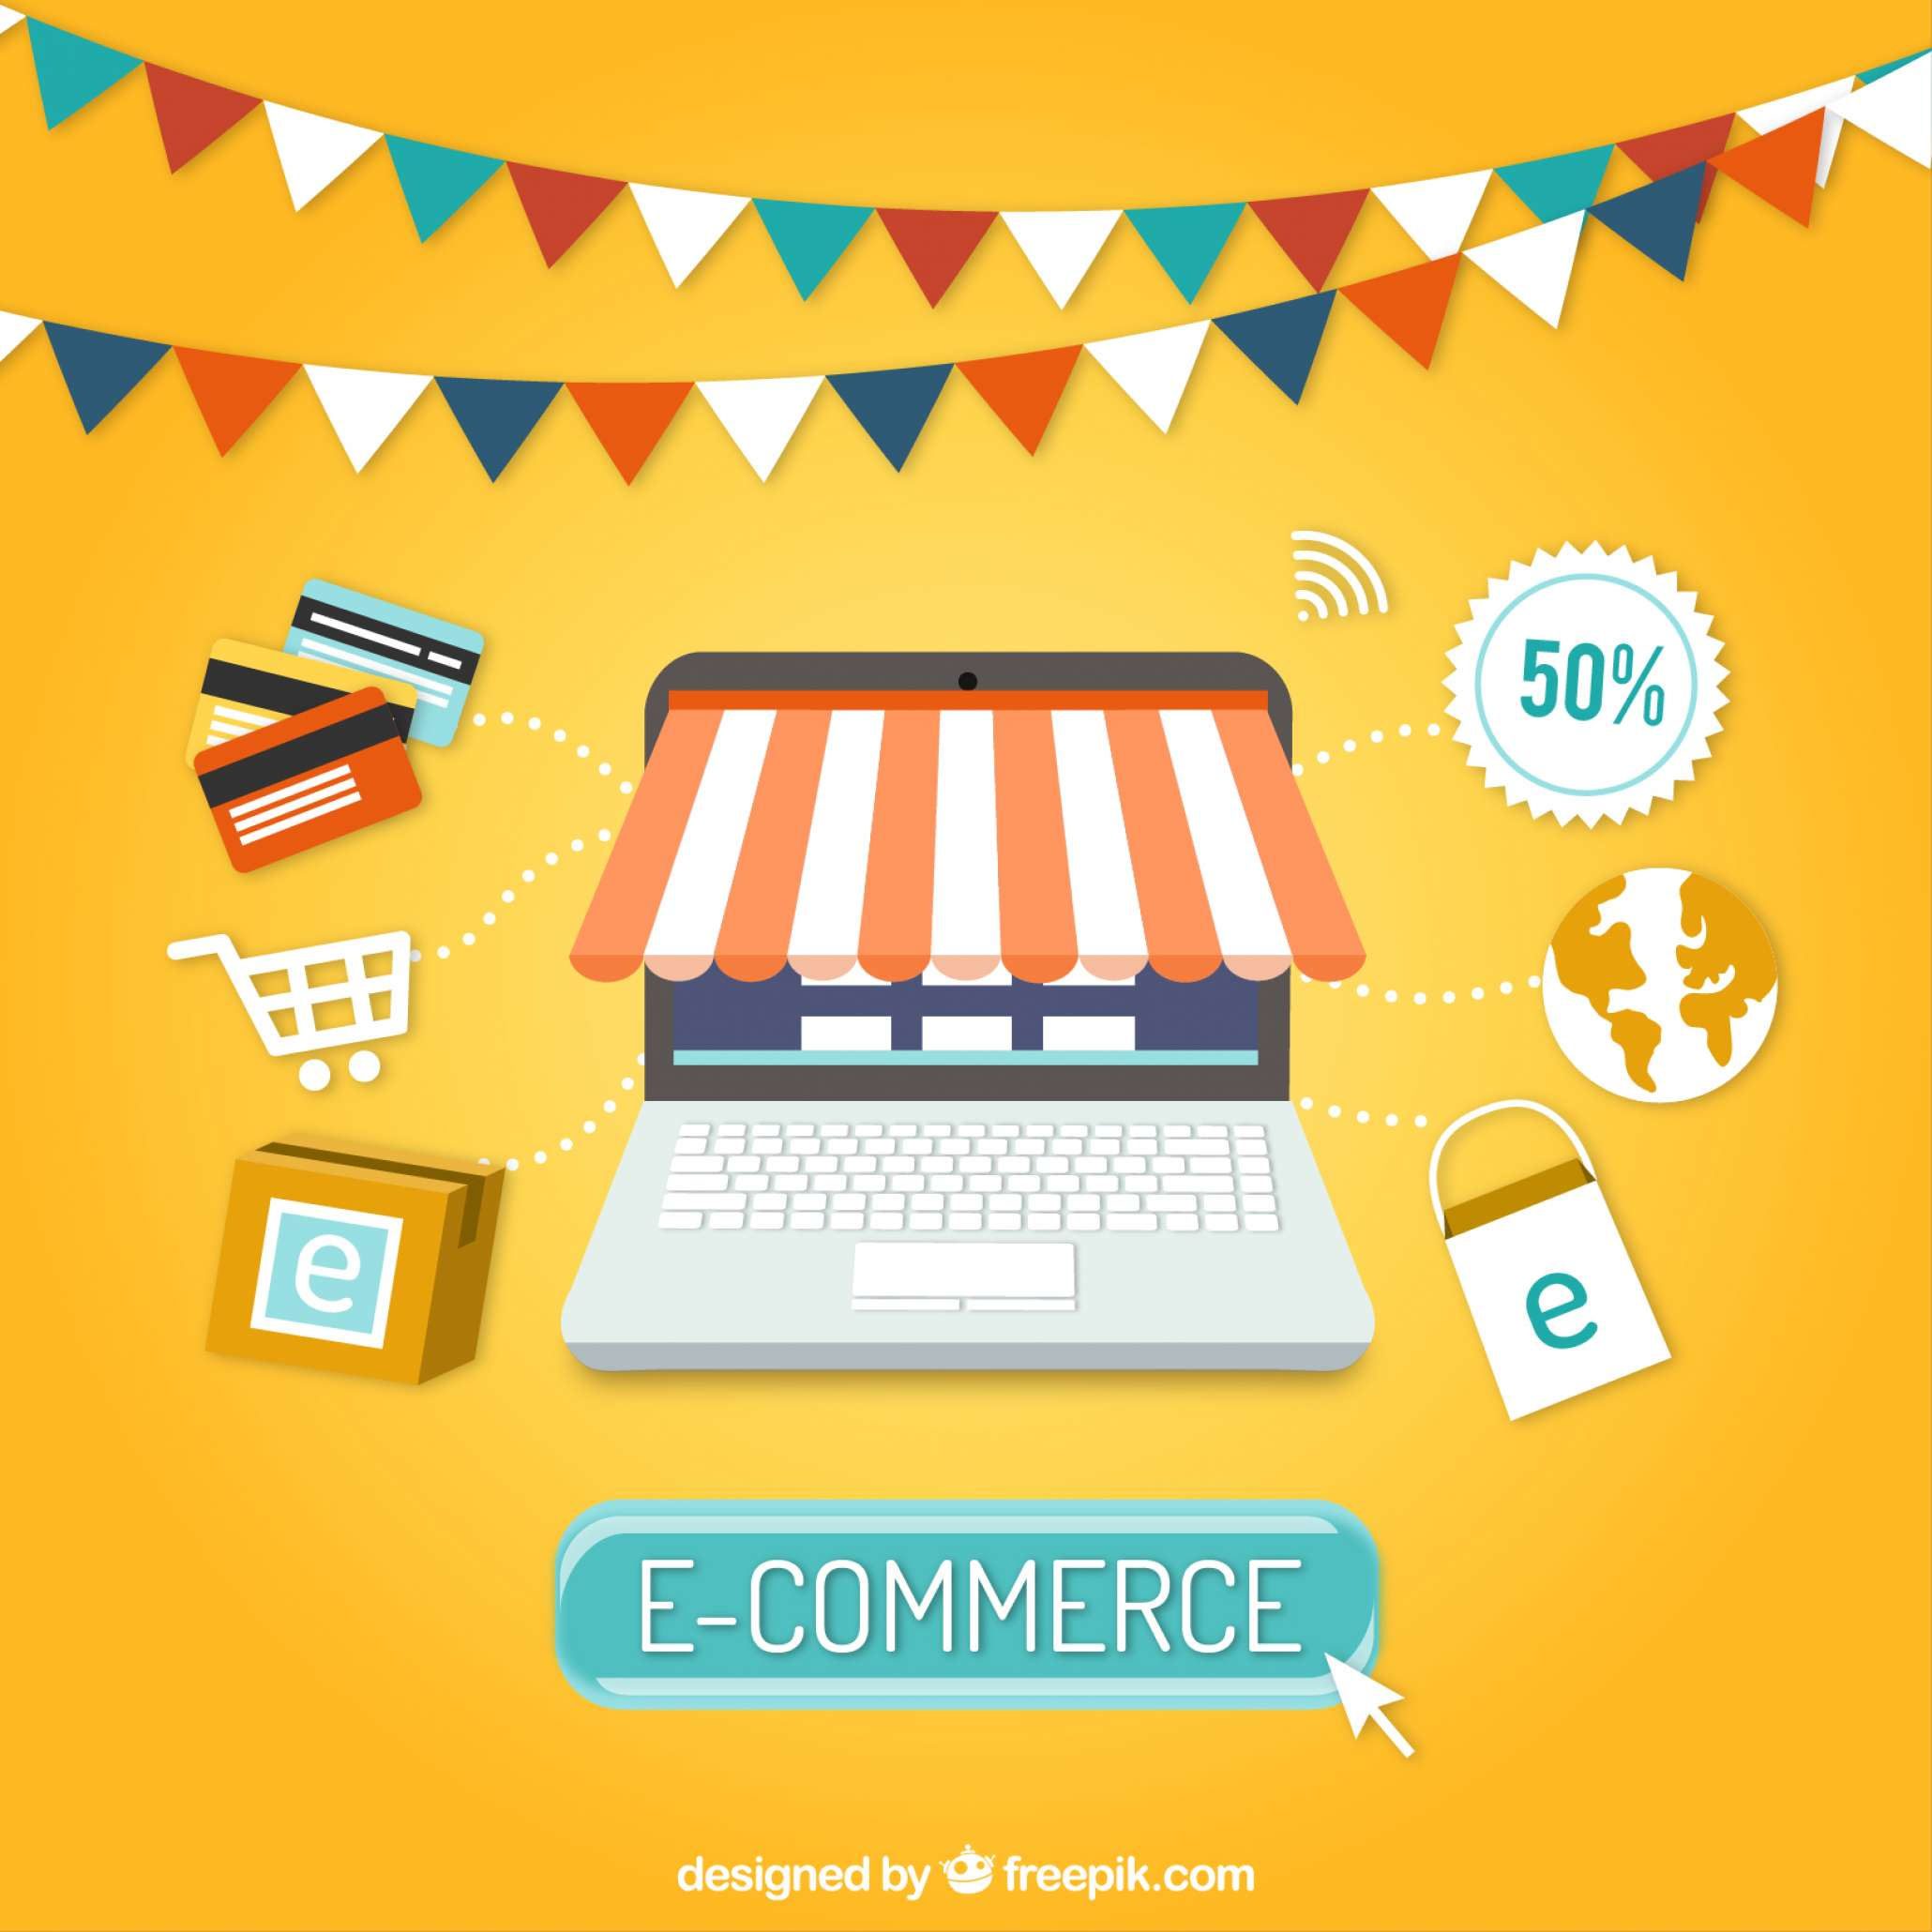 consumer behaviour with context to e commerce Furthermore, e-commerce has impacted consumer behaviour through widening choices for consumers in several levels specifically, nowadays consumers have an opportunity of comparing various aspects of products online prior to making a commitment of purchasing from a specific brand.